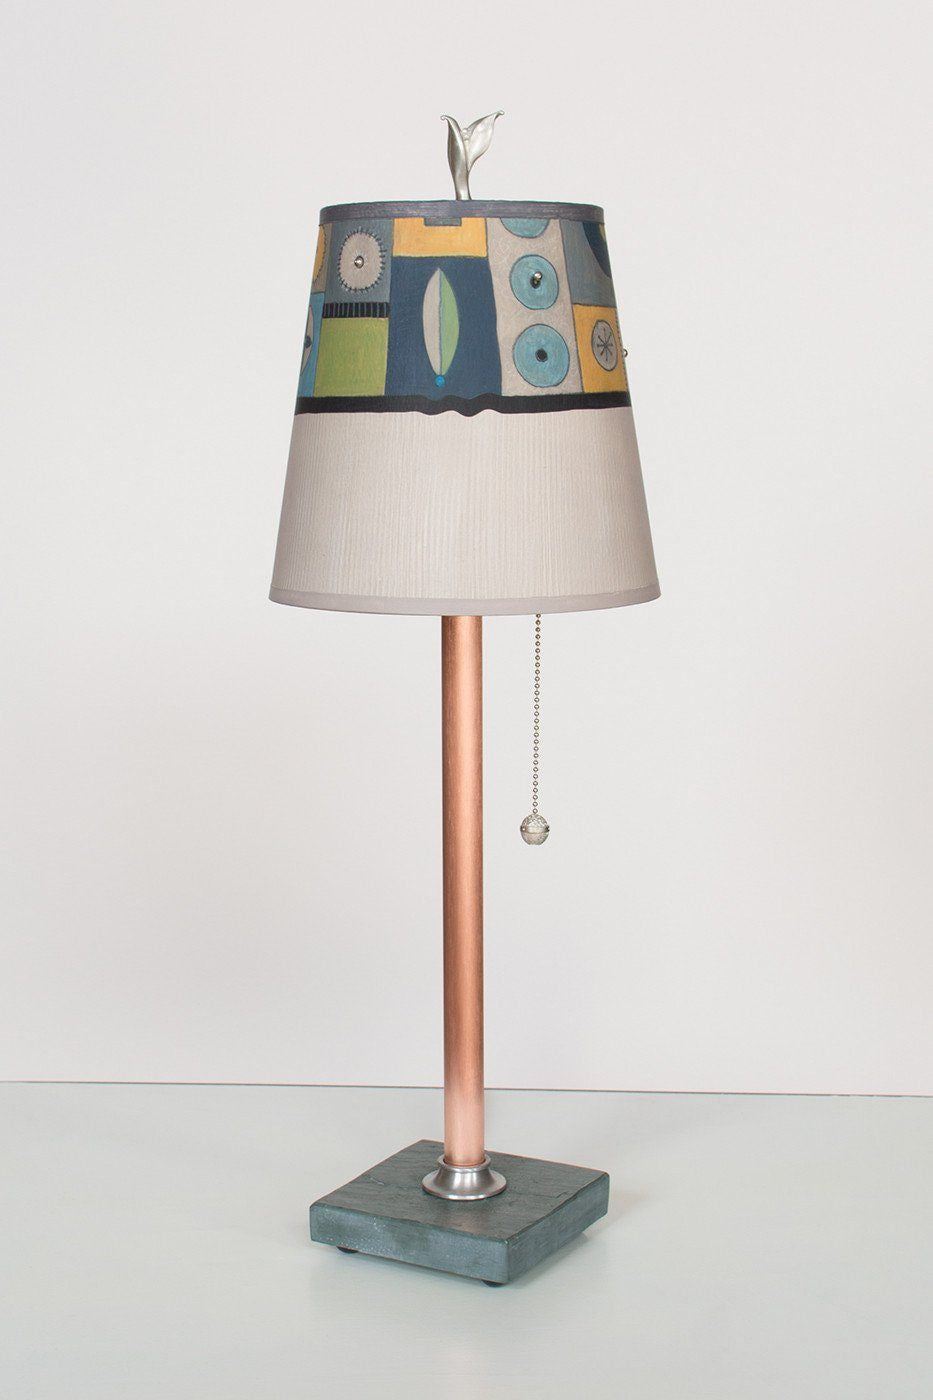 Copper Table Lamp  on Vermont Slate Base with Small Drum Shade in Lucky Mosaic Oyster Lit